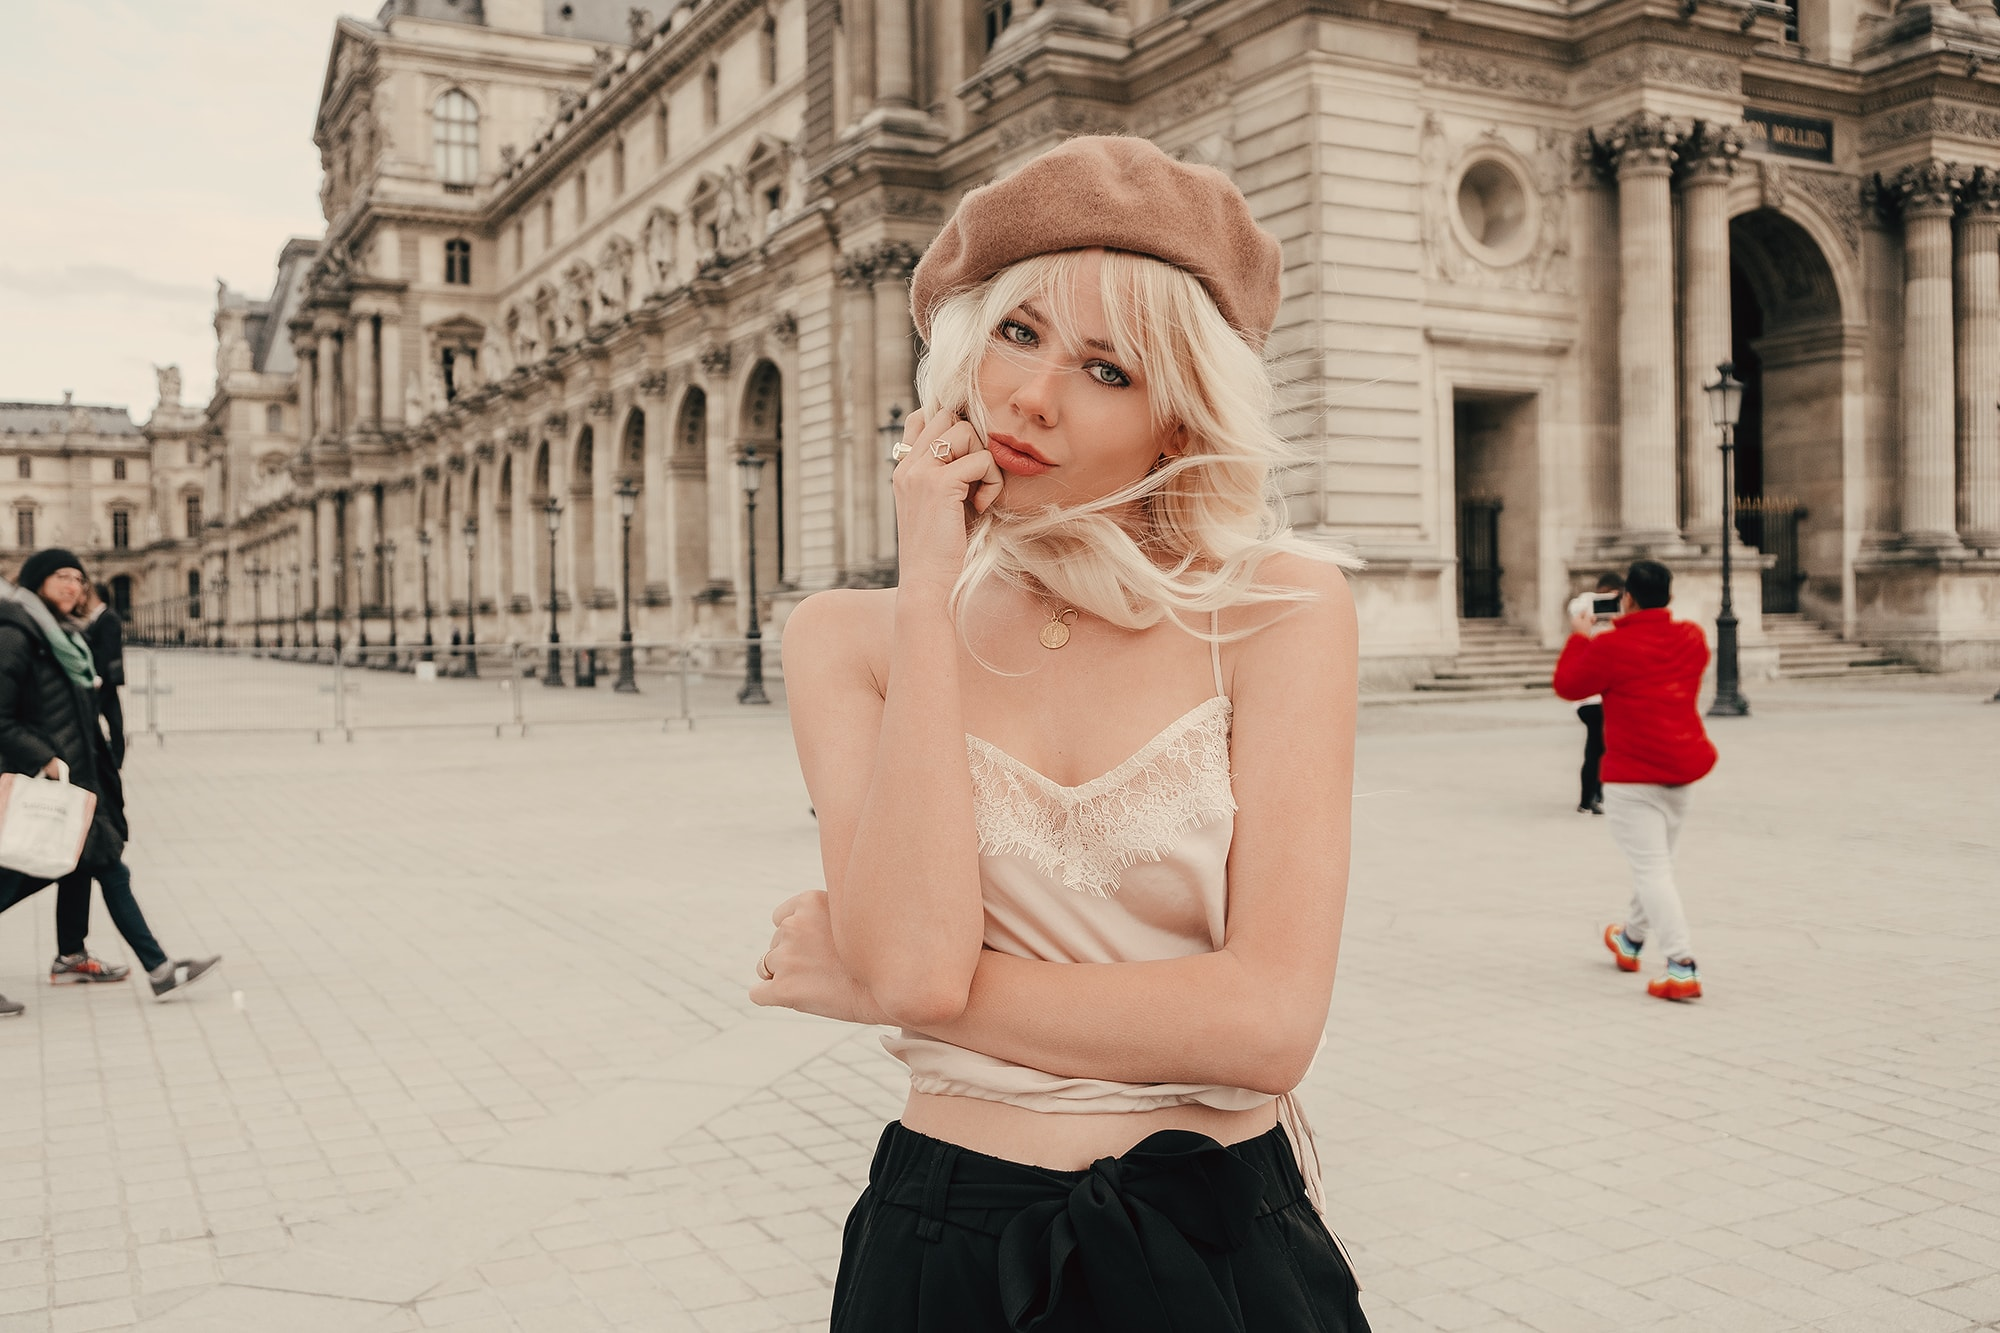 Sarah Loven in tan French beret at the Louvre in Paris